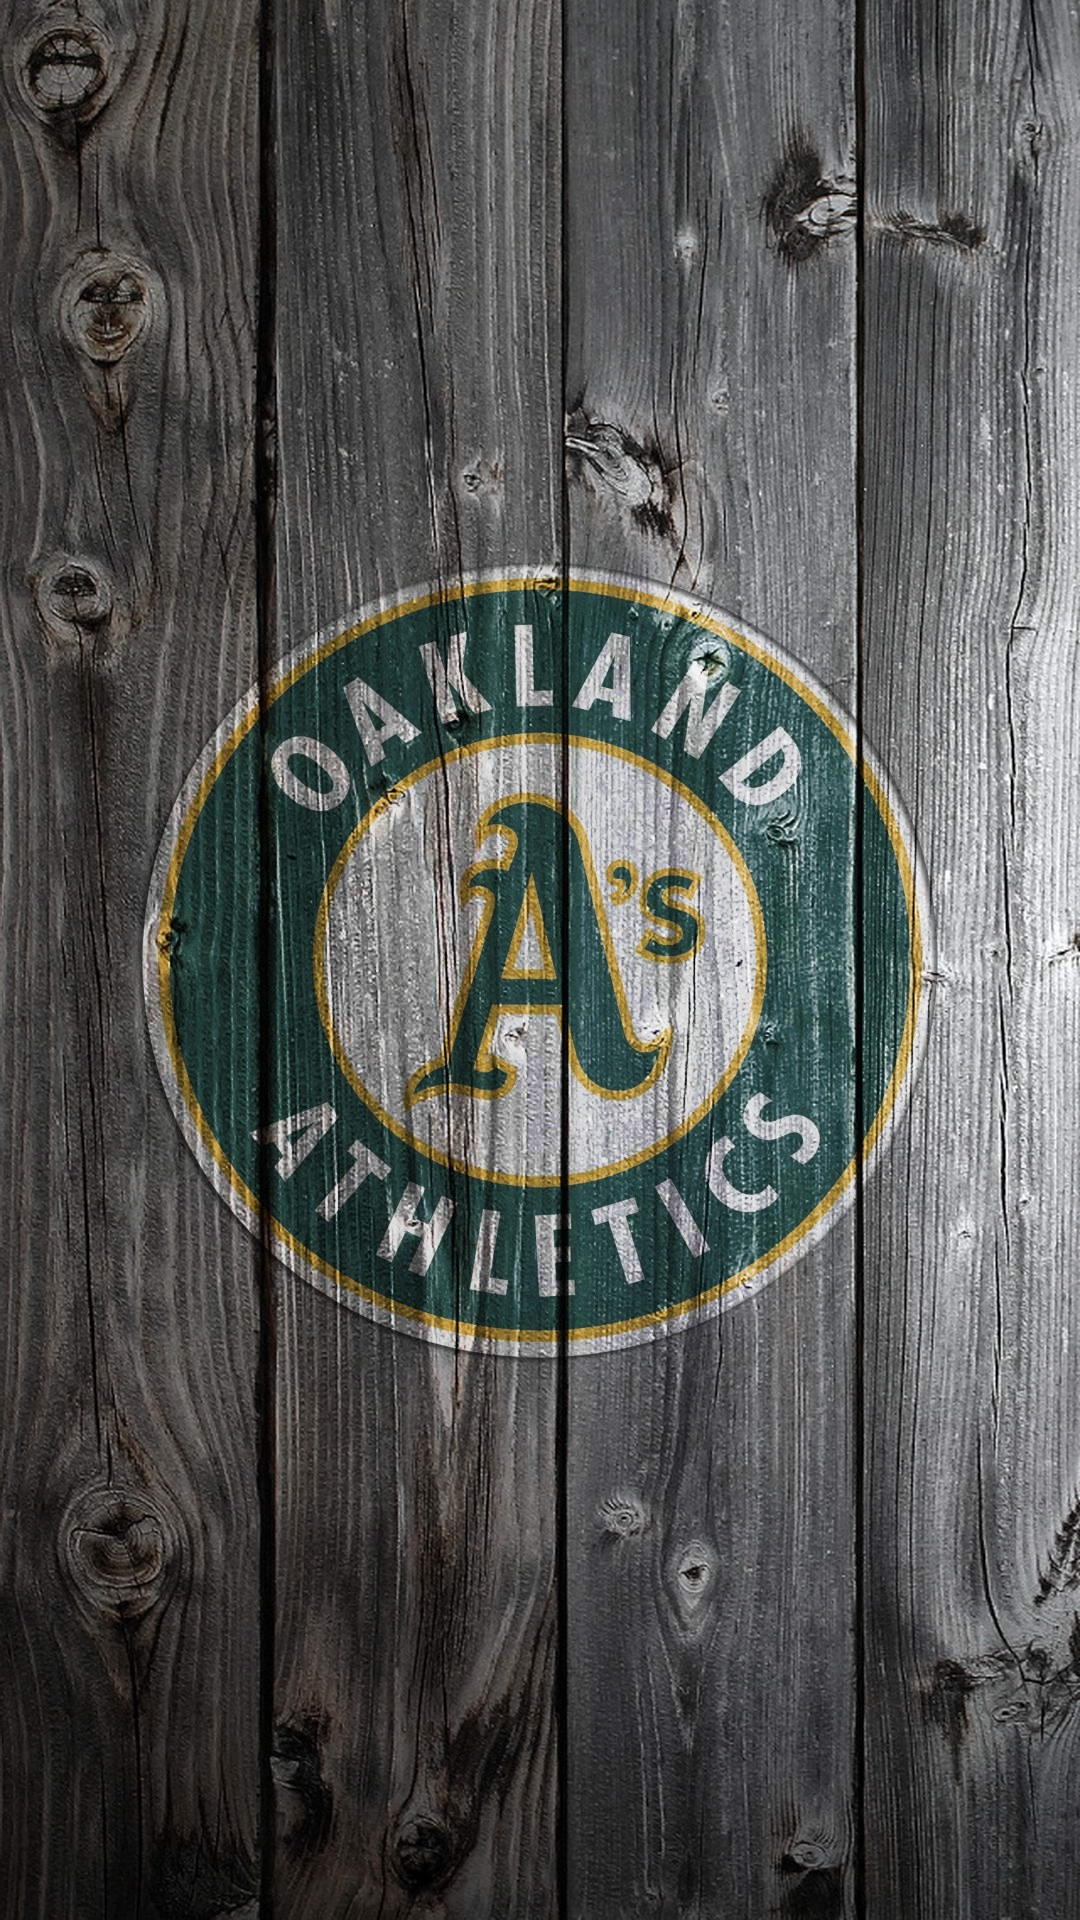 Oakland Athletics Wood Background For Iphone 7 Plus Hd Wallpaper …